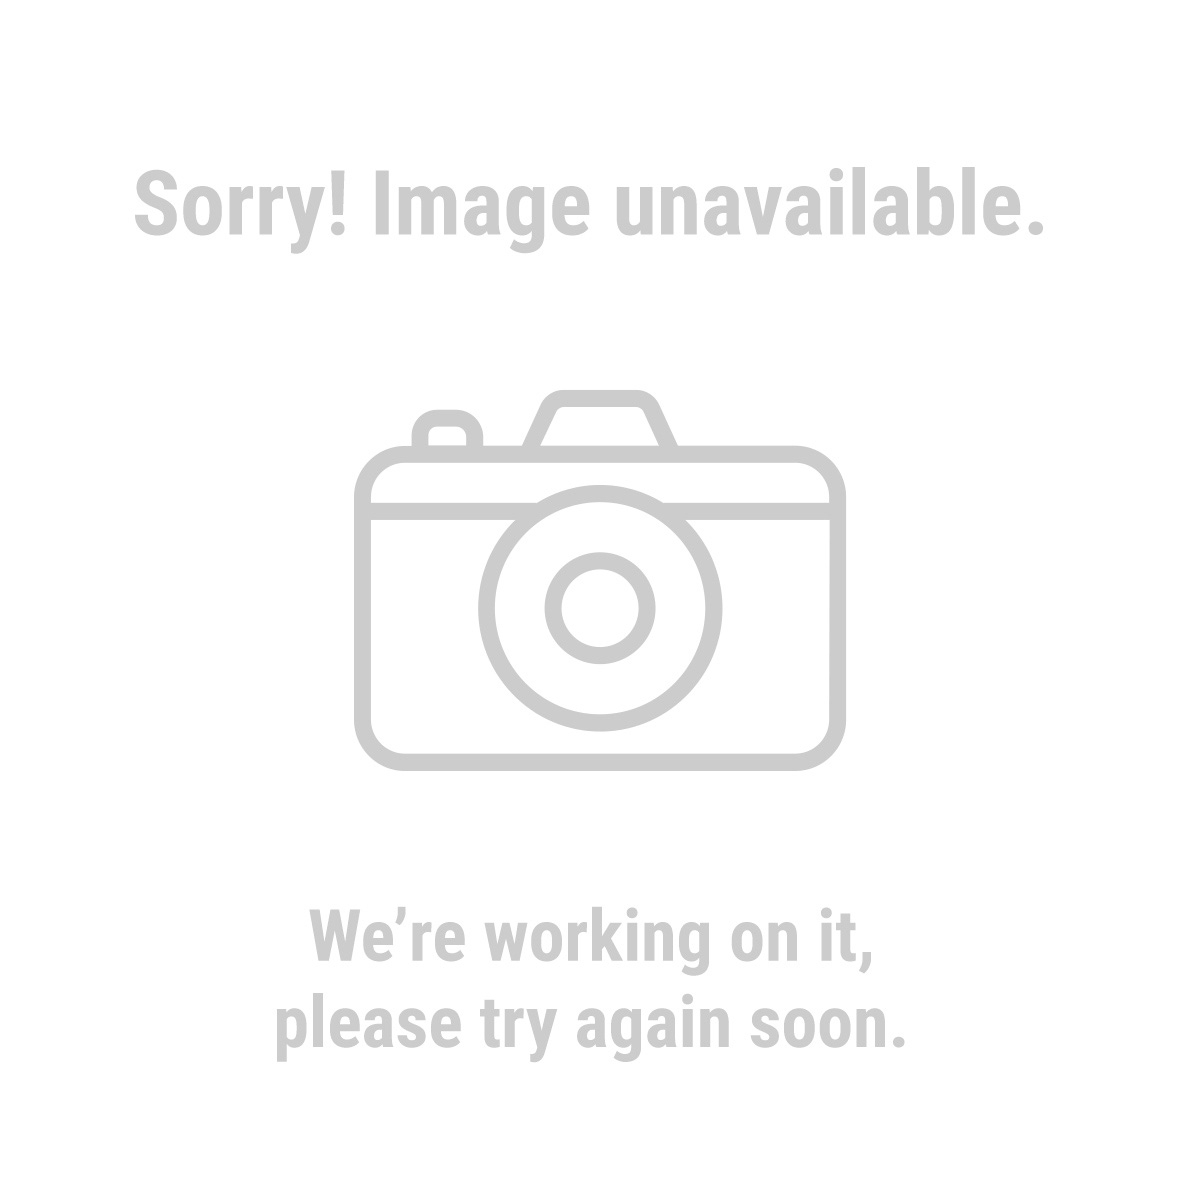 8 Piece Professional Screwdriver Set